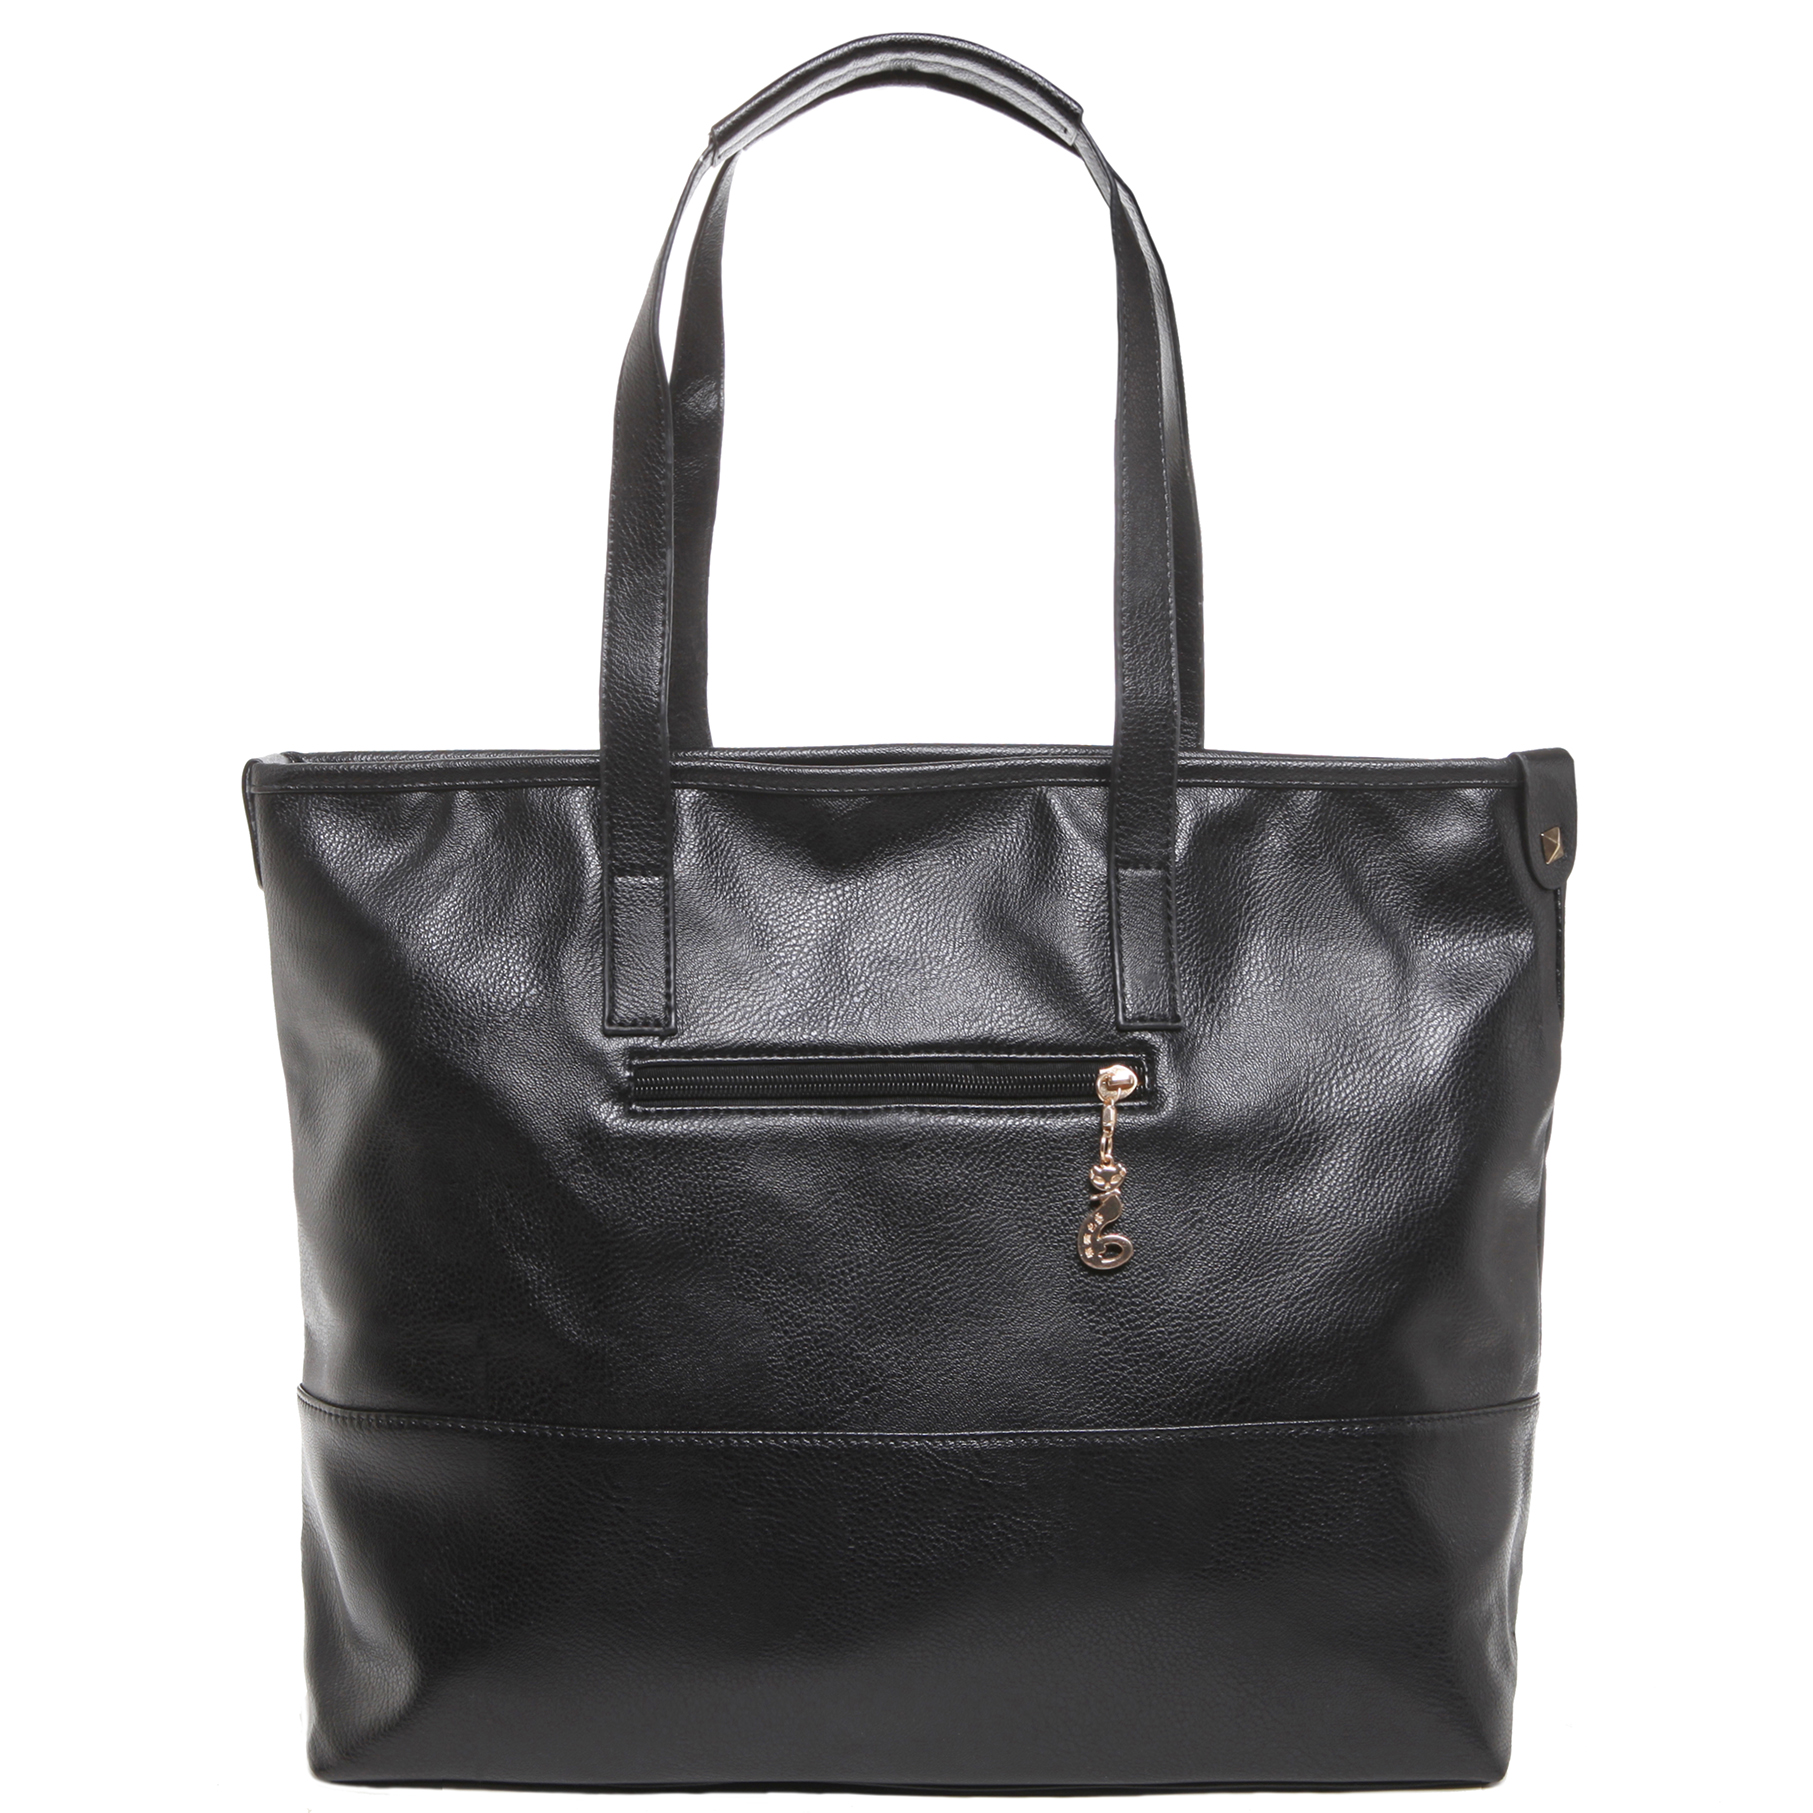 mg-collection-cosette-gothic-studded-shopper-tb-h0418blk-4.jpg